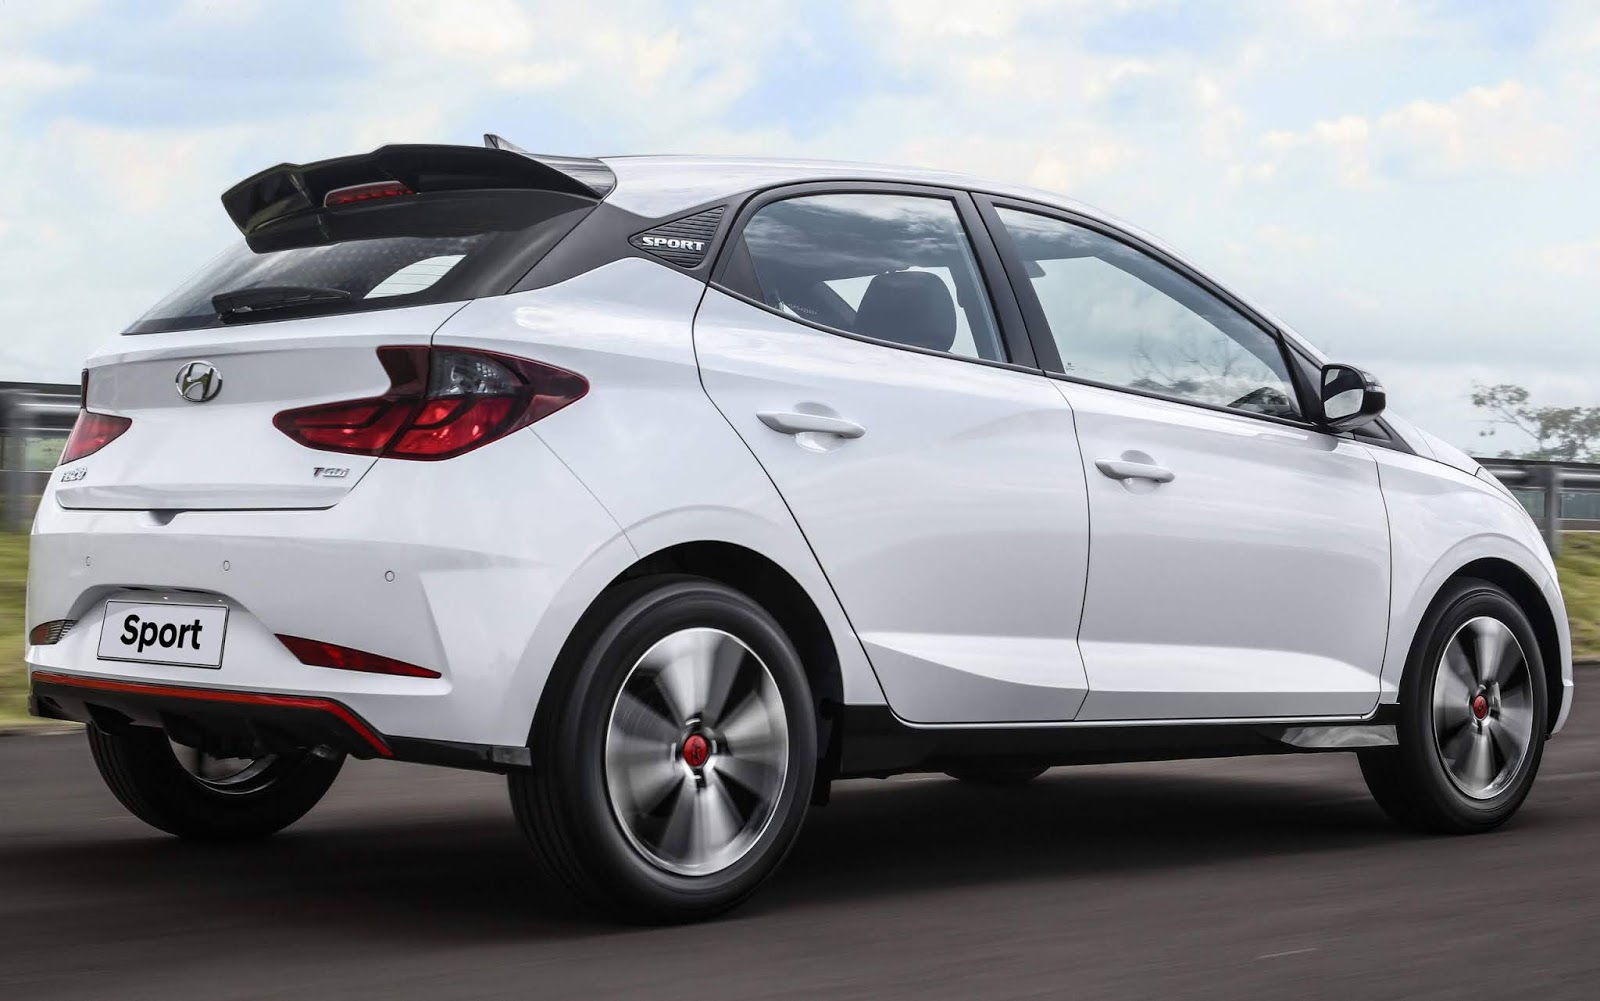 Hyundai Brasil launched the 2nd-gen Hyundai HB20 range in South America countries last fall, updating the Solaris platform the sedan, hatchback and crossover are based upon. Today, it announced the 'sports-ready' HB20 Sport.